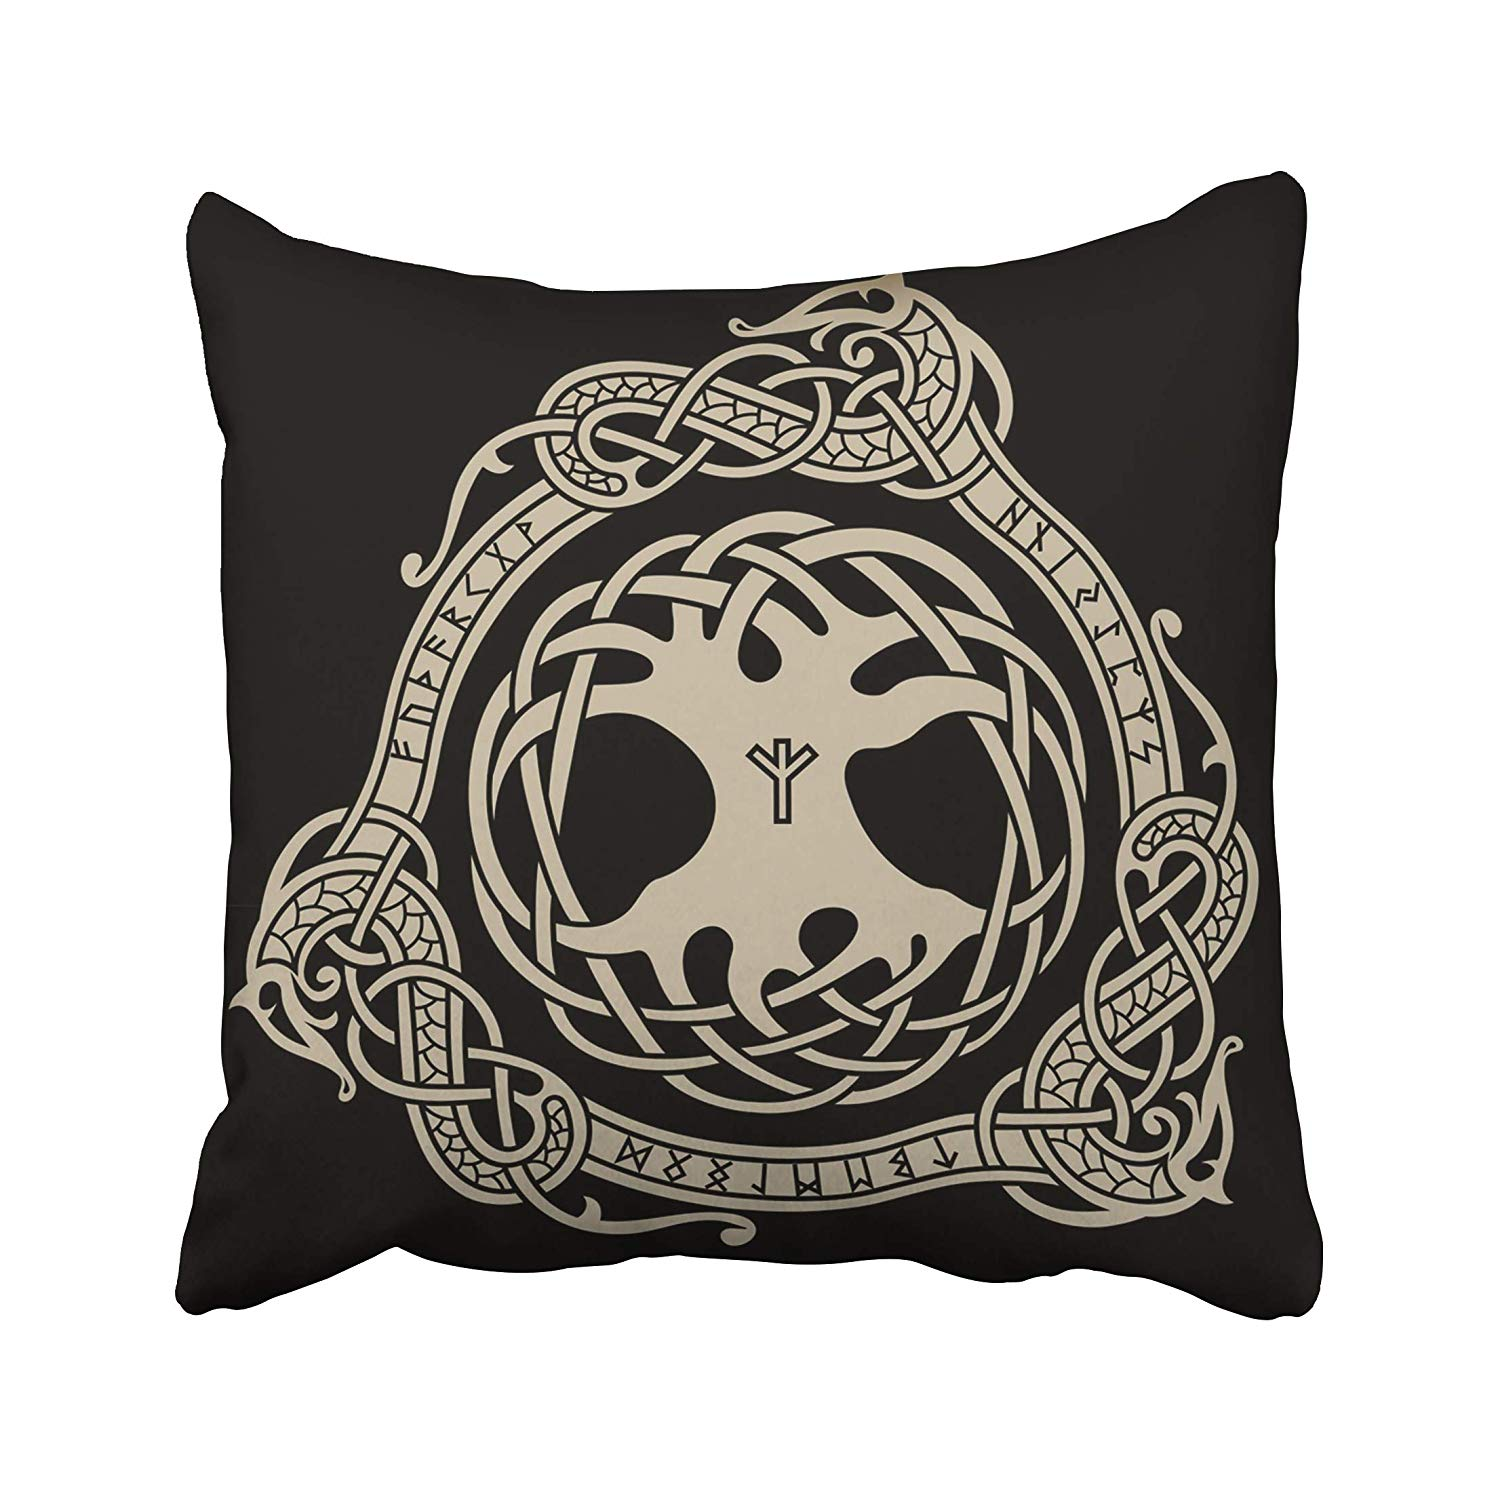 Pillow Case Cover Yggdrasil Design of Raven in Scandinavian Style Norse Runes Black Ancient Pillowcases Covers Two Sides Print